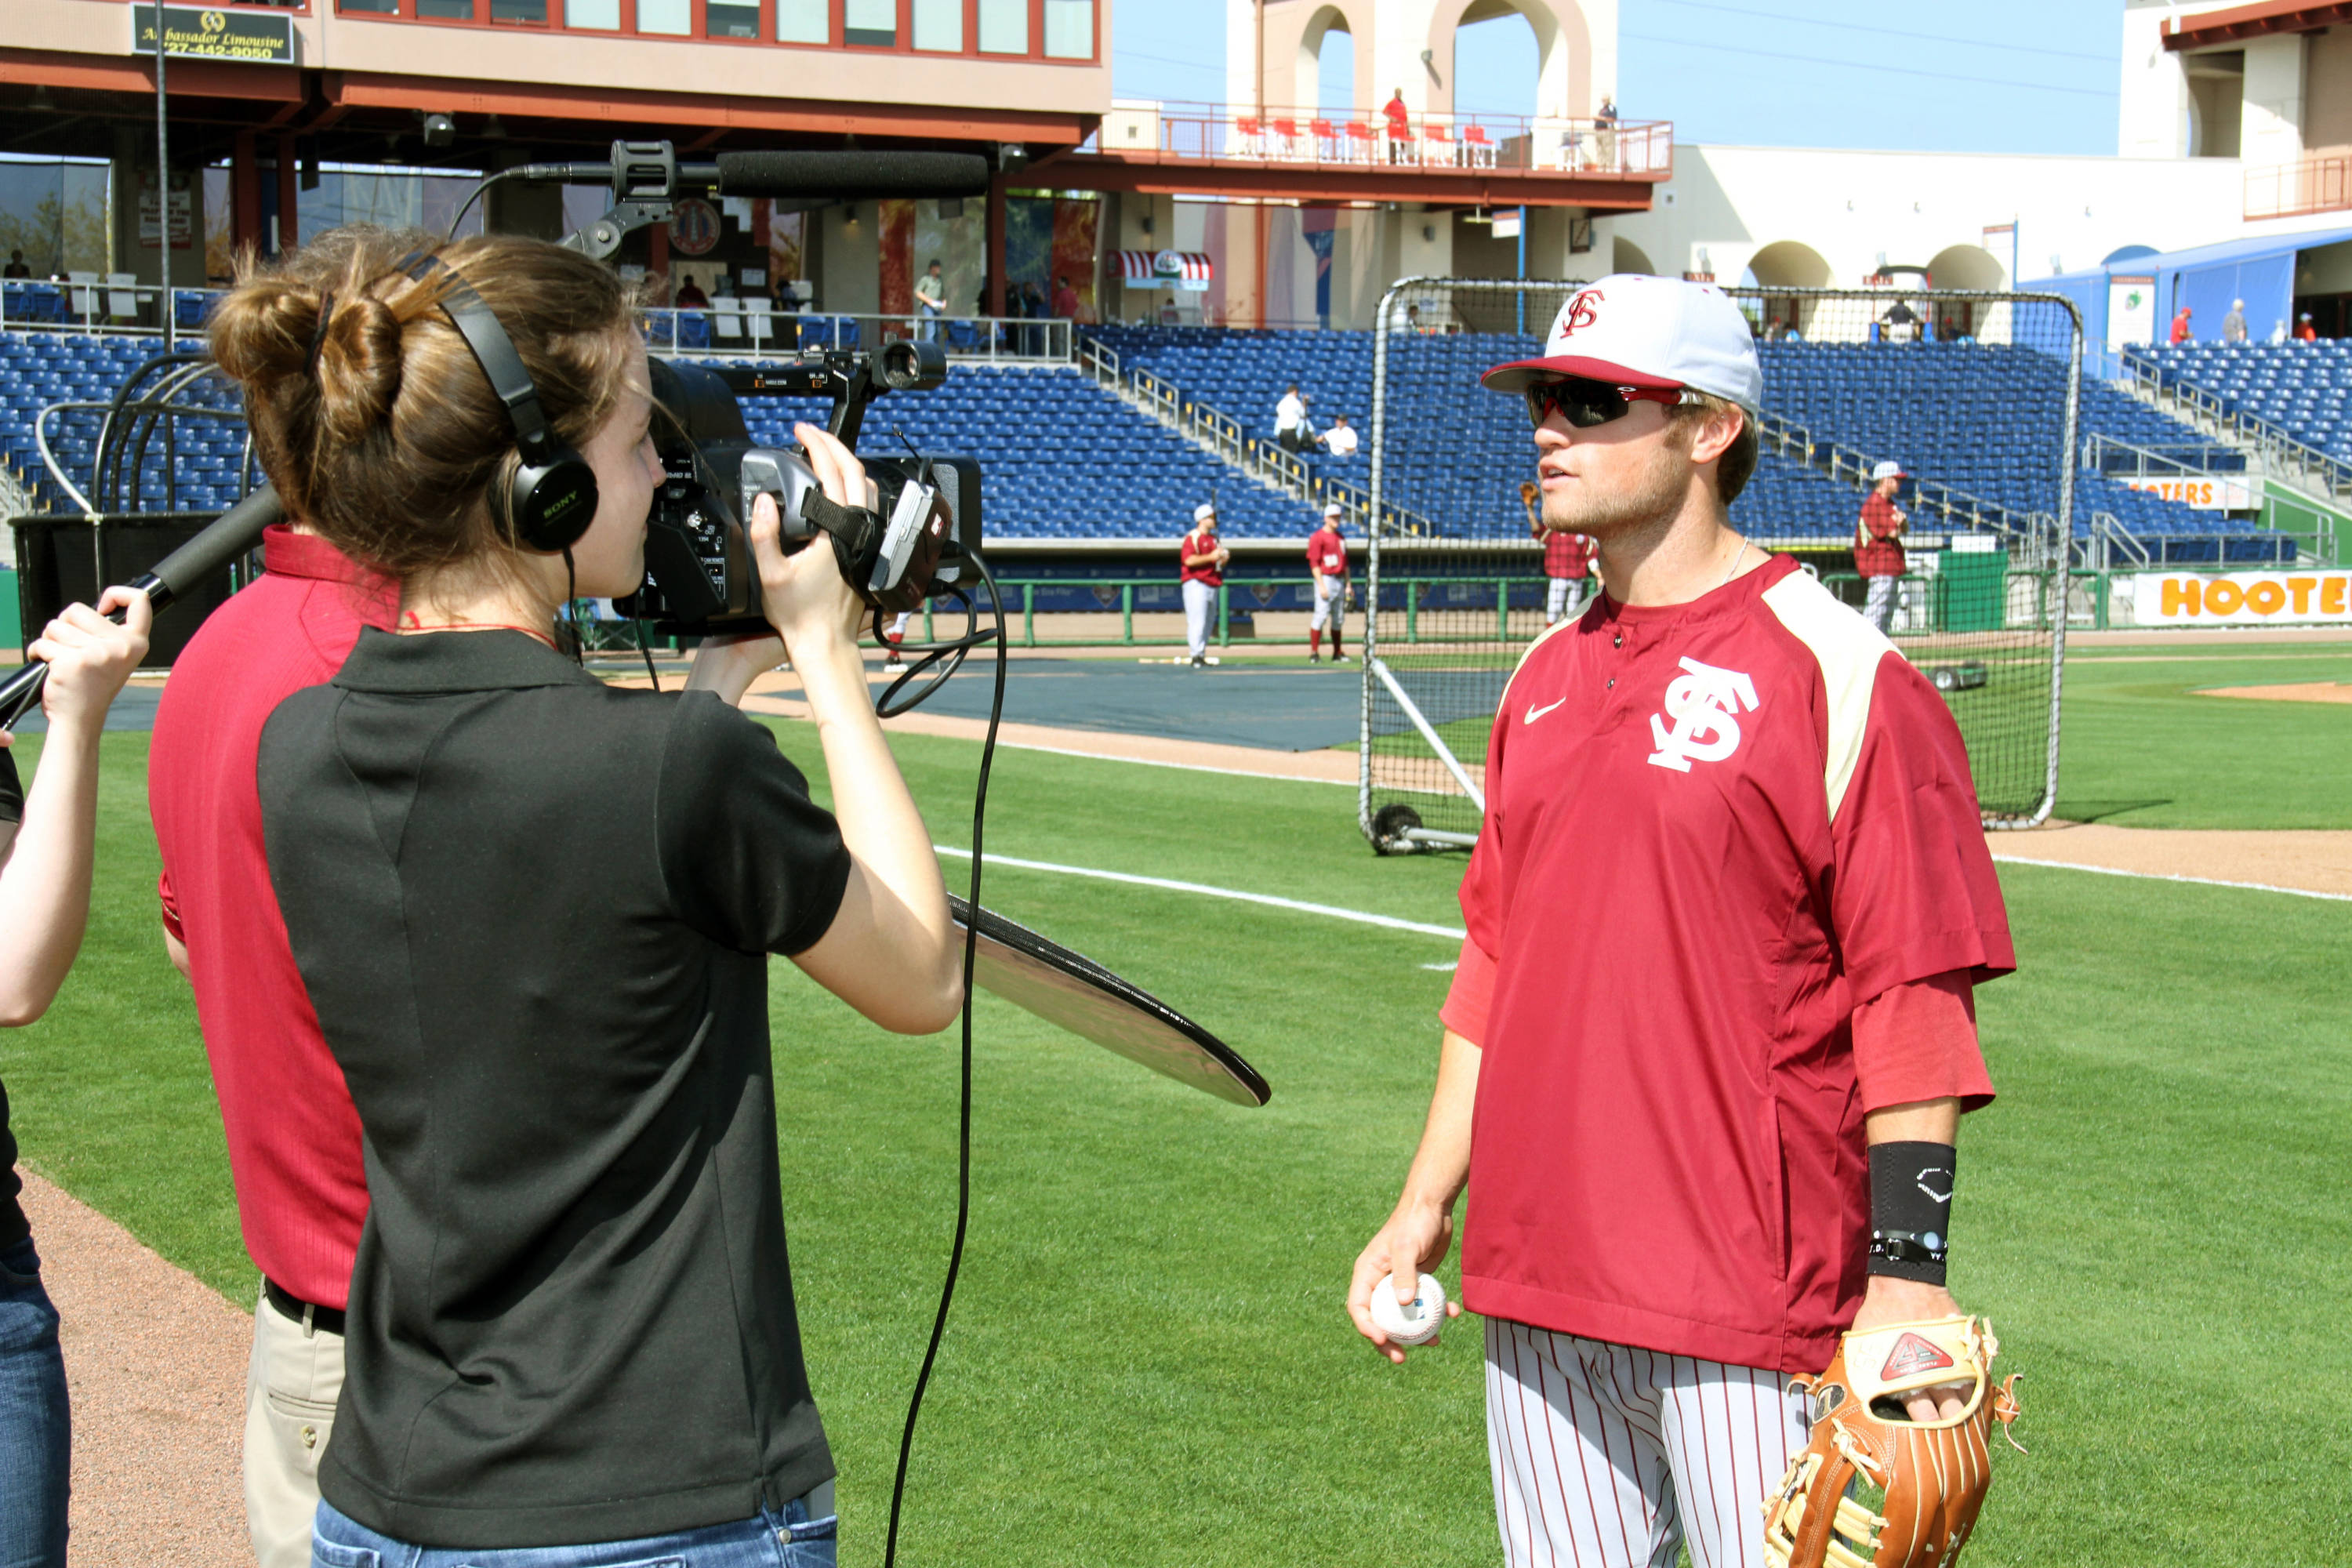 James Ramsey is interviewed by the media on the field during the game.